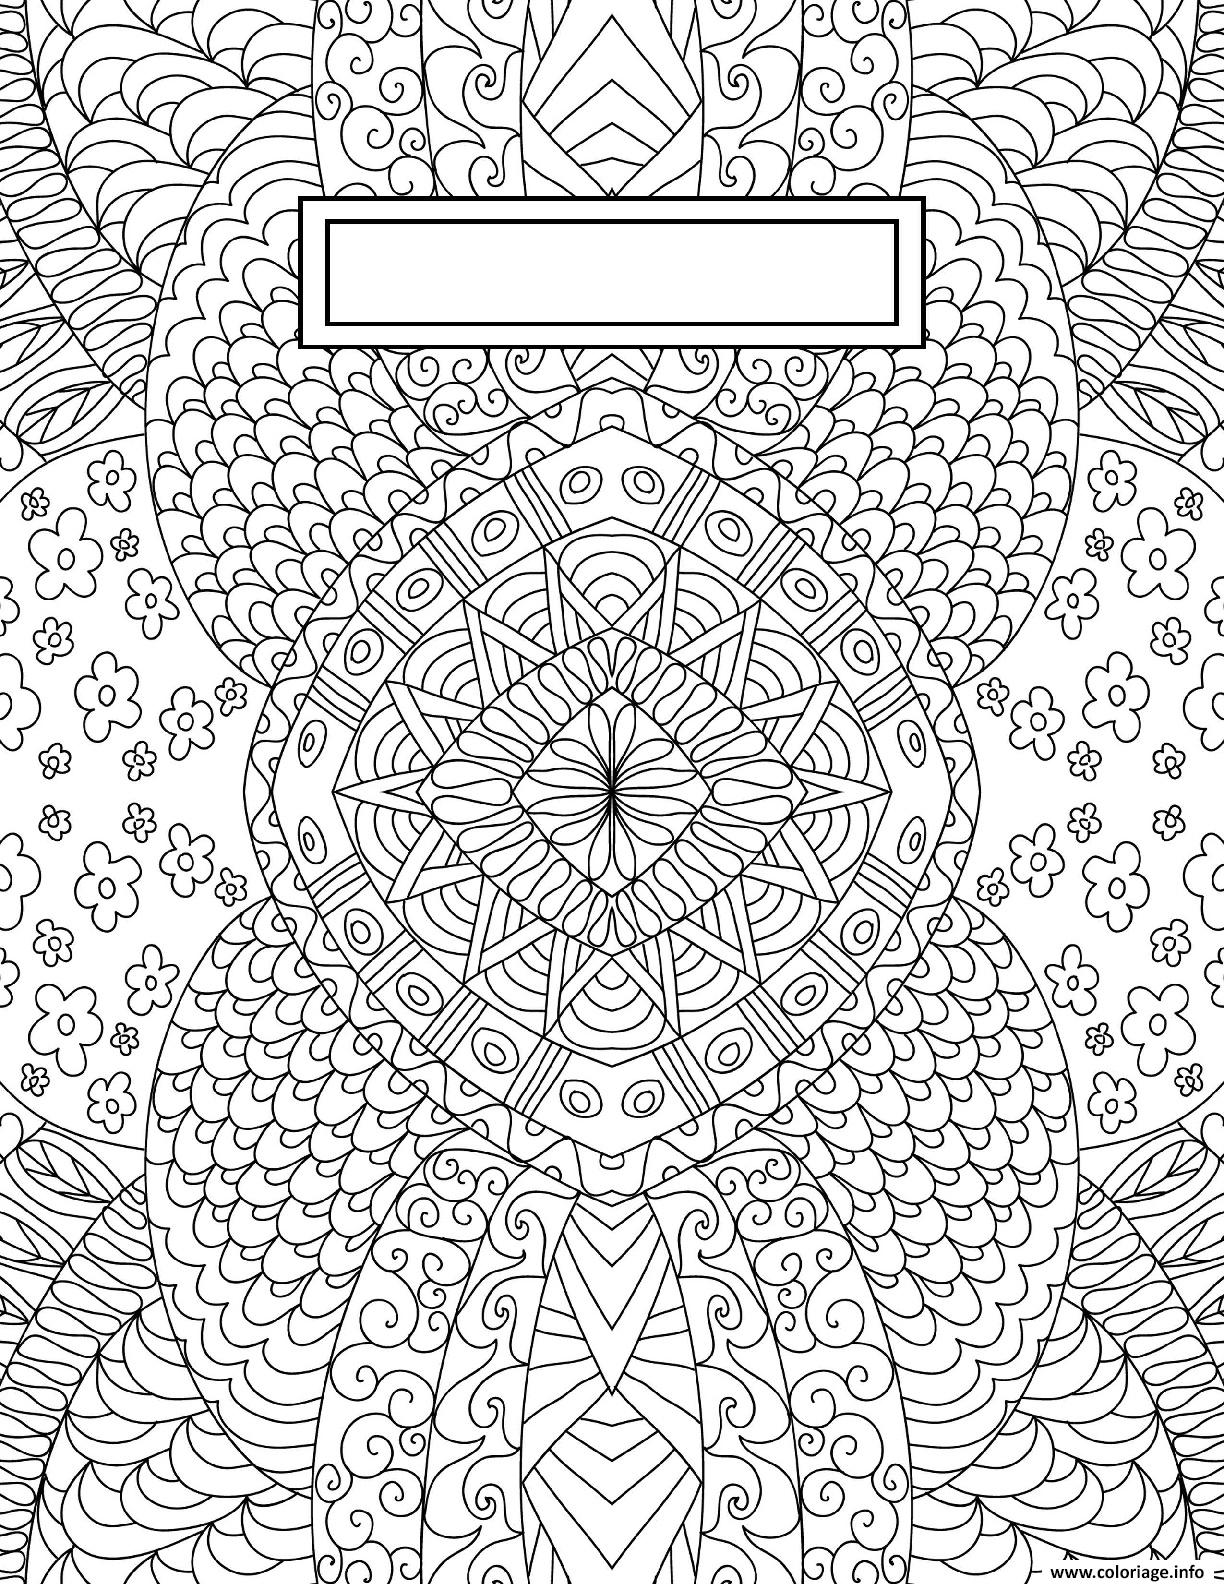 Dessin Binder Cover Adult Relaxing Coloriage Gratuit à Imprimer